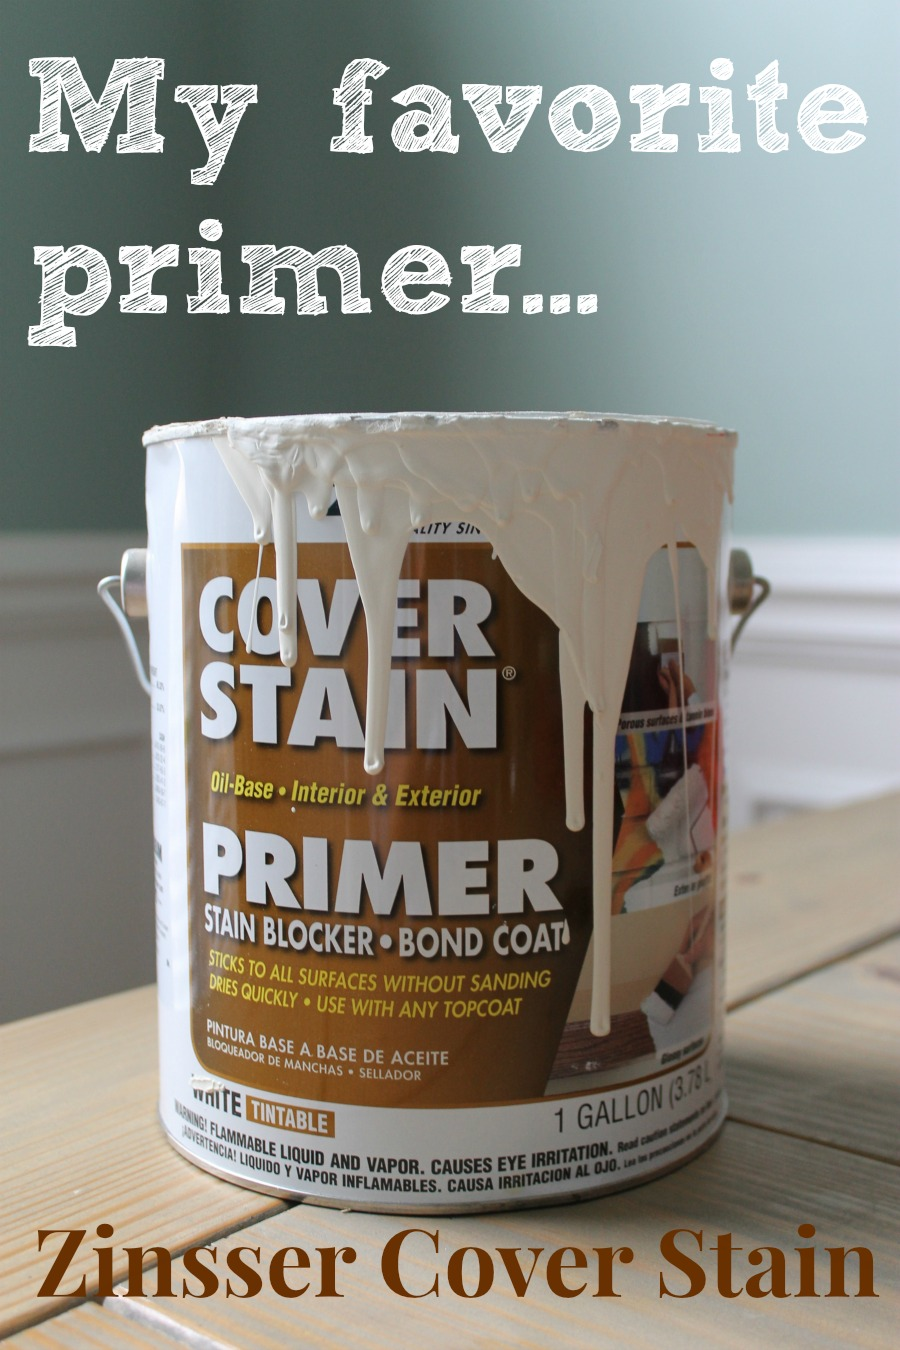 My Favorite Primer For Painting Cabinets Is Zingeru0027s Cover Stain!